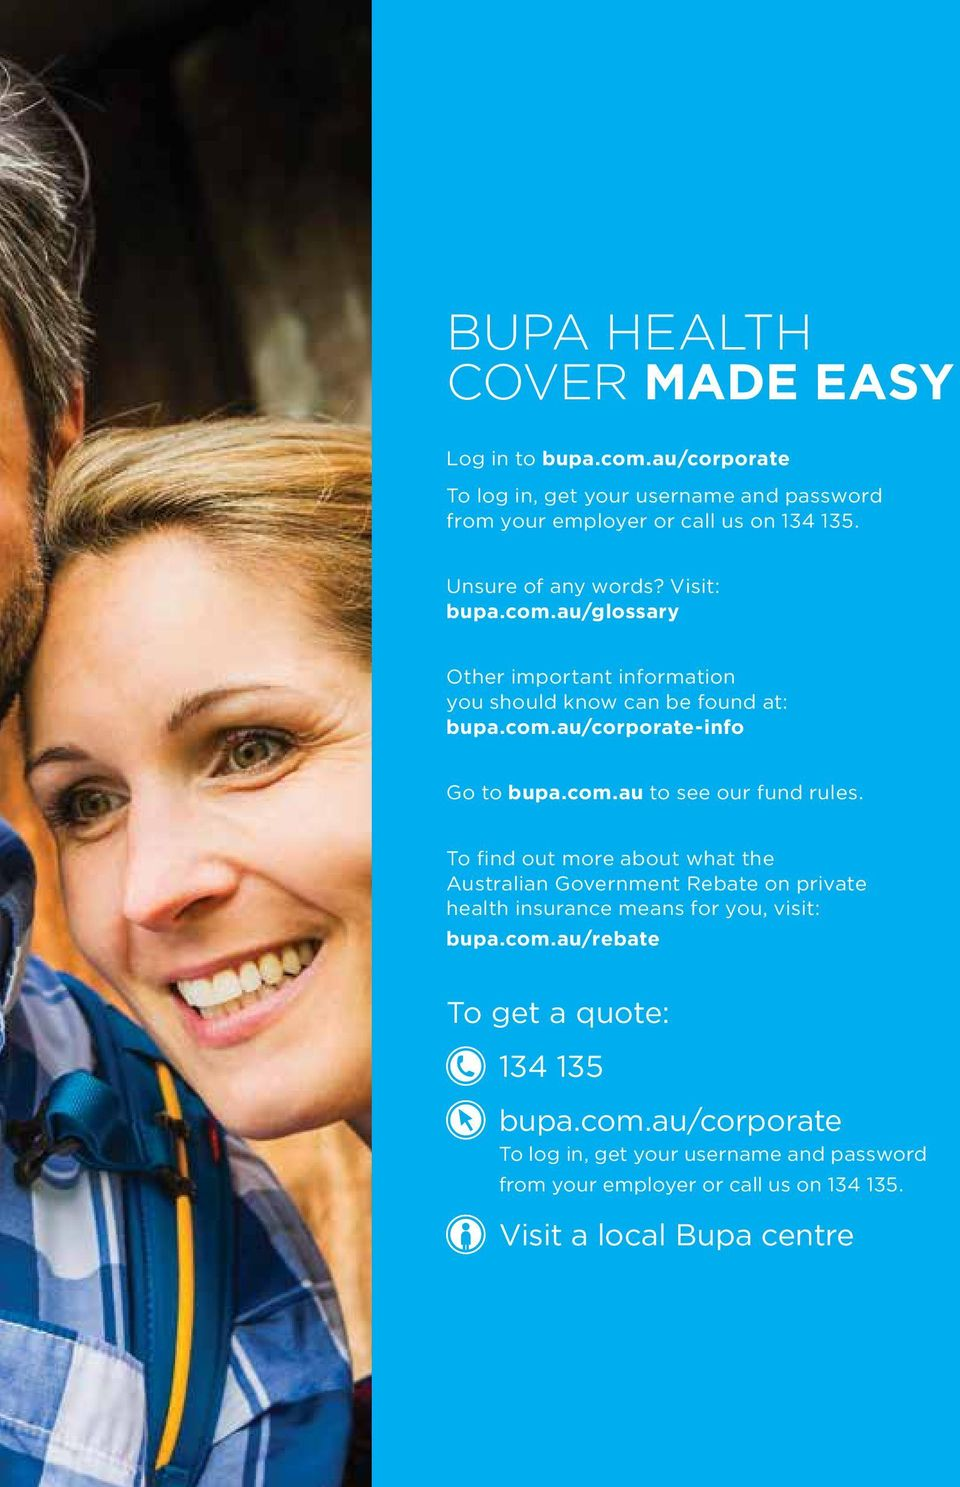 To find out more about what the Australian Government Rebate on private health insurance means for you, visit: bupa.com.